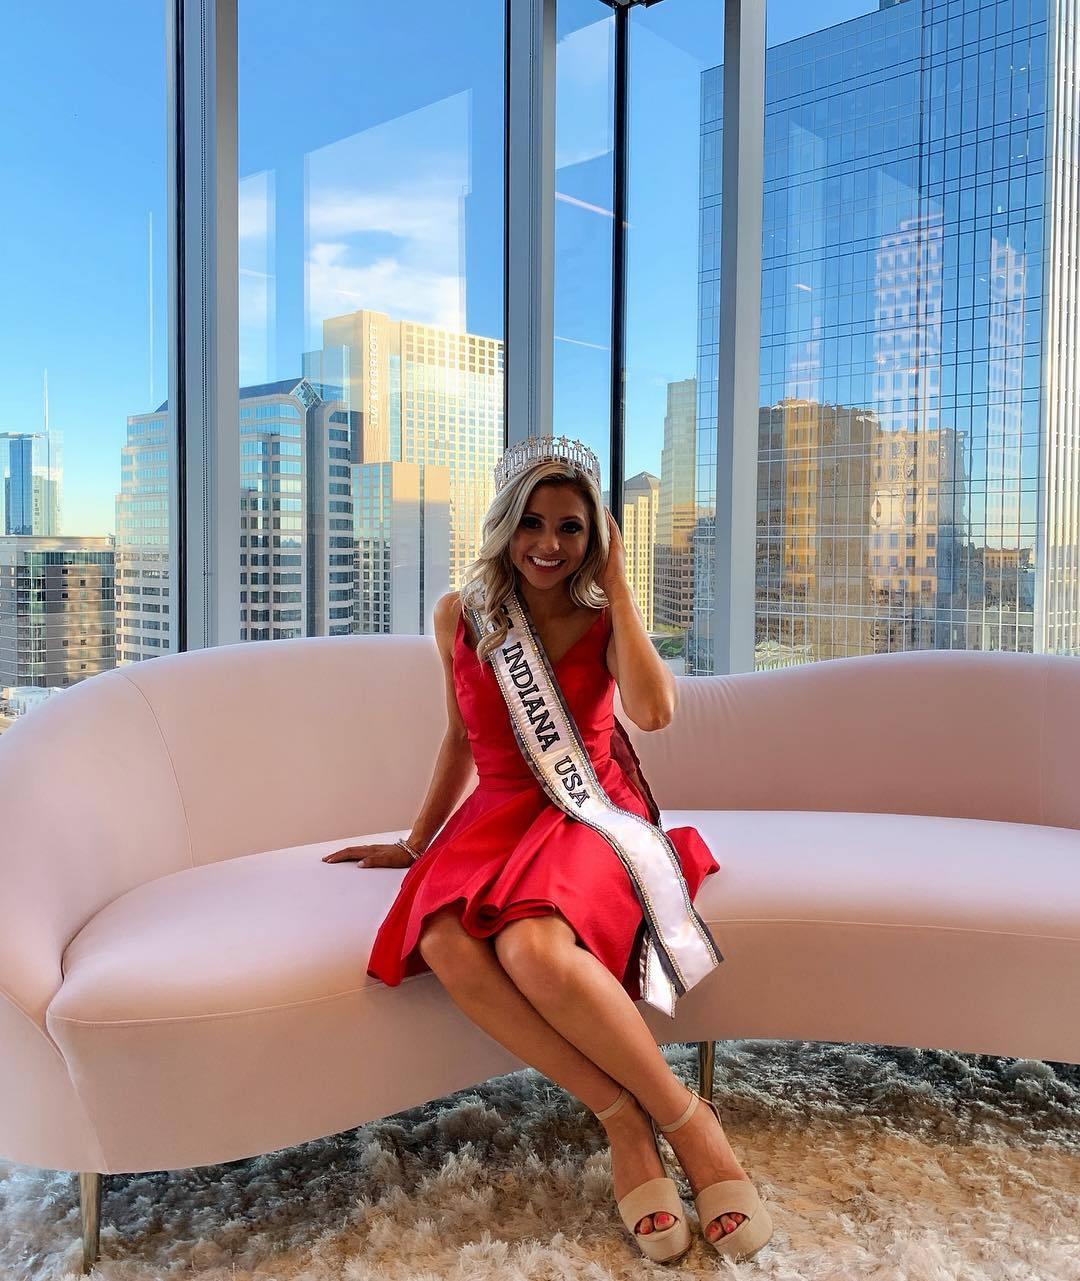 tate fritchley, miss indiana 2019. 44746792_312067376083910_5821065540848268778_n